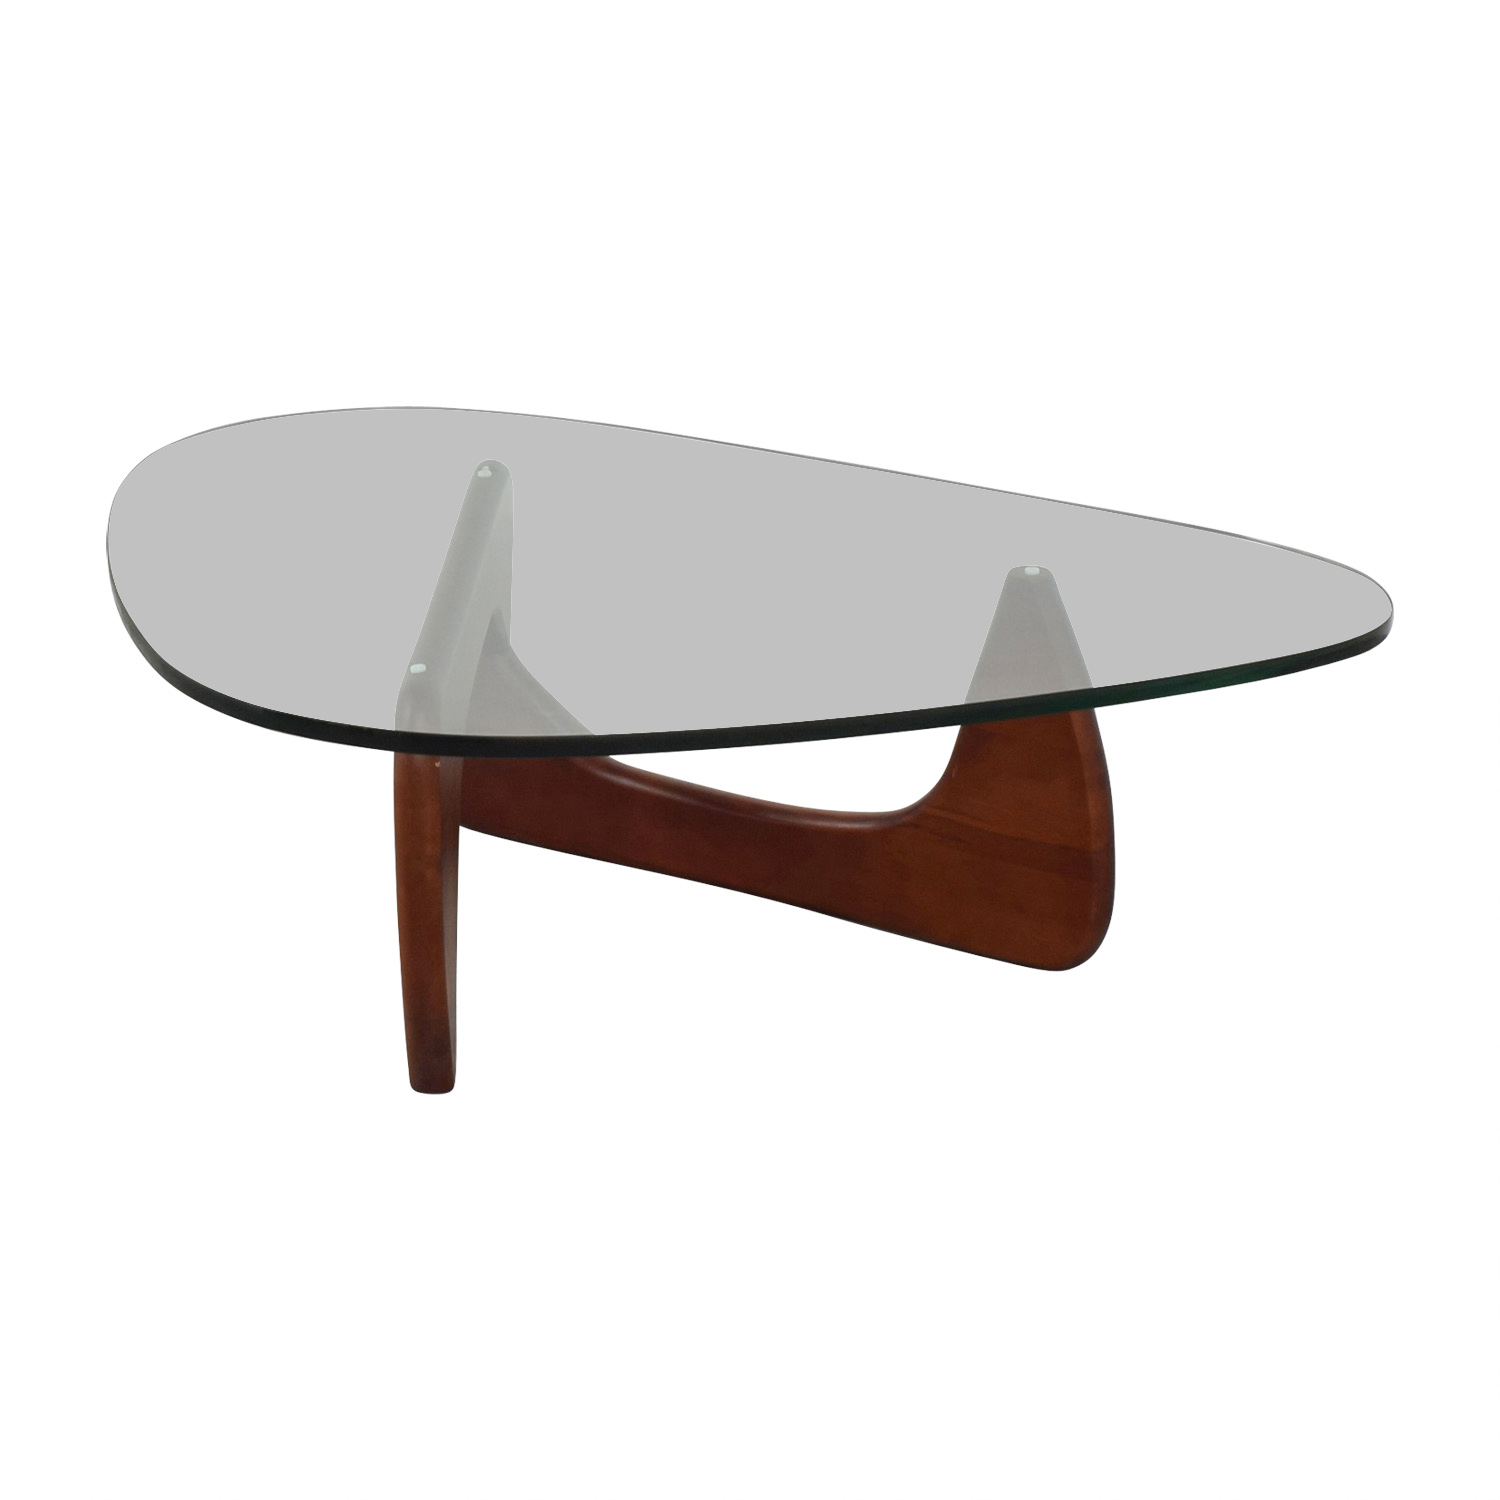 buy Modway Isamu Noguchi-inspired Triangle Glass Coffee Table with Cherry Wood Modway Coffee Tables